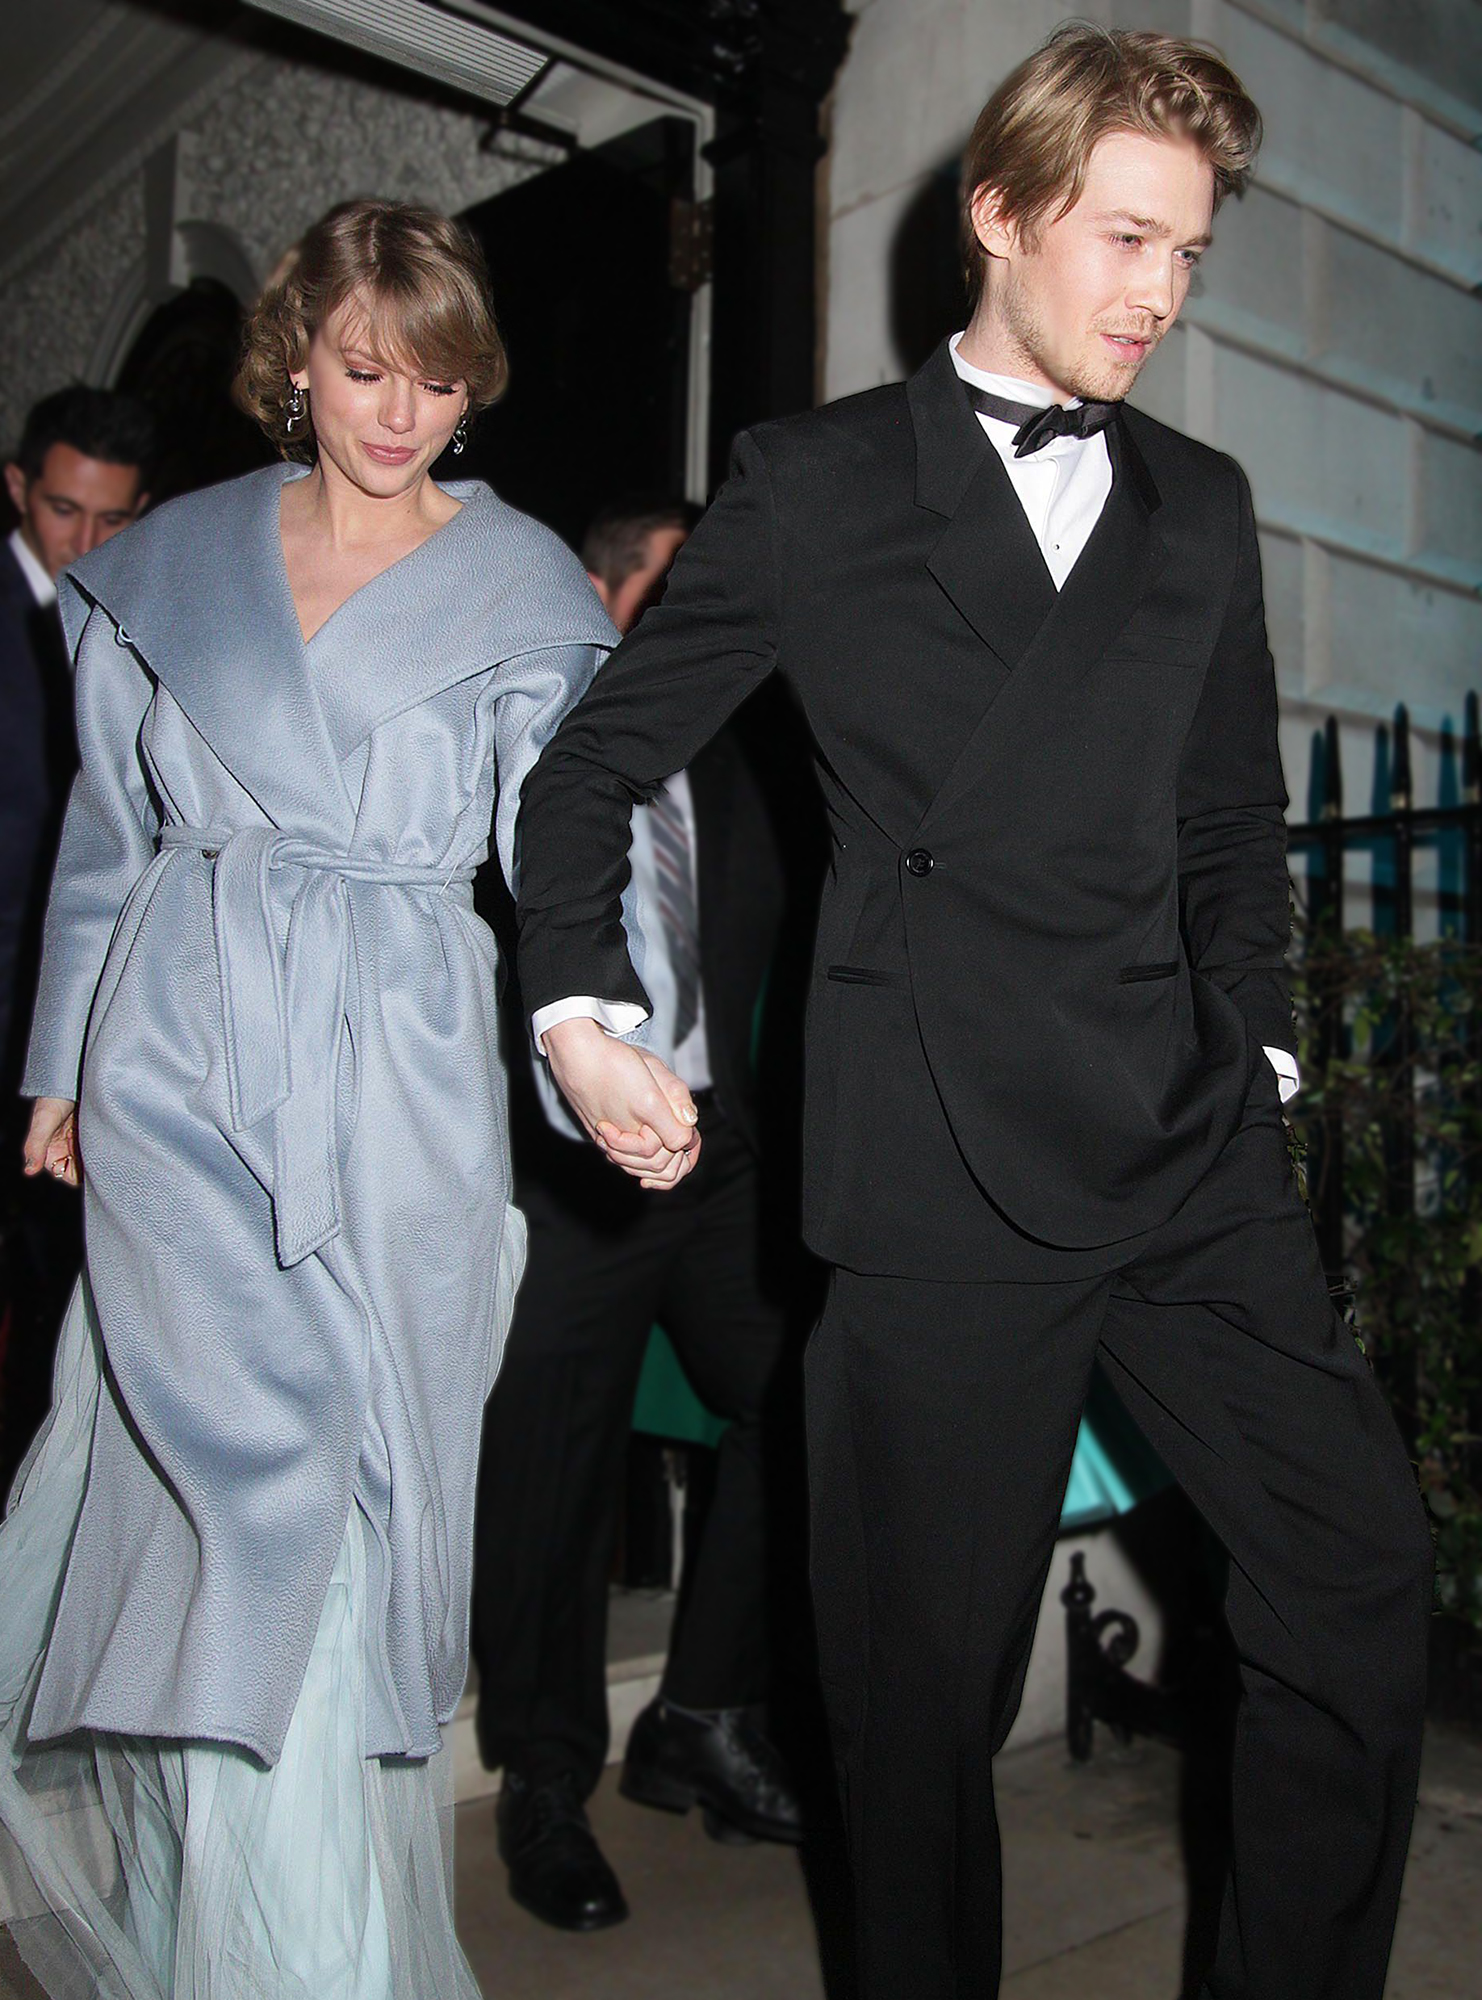 Taylor Swift Sparks Joe Alwyn Engagement Speculation